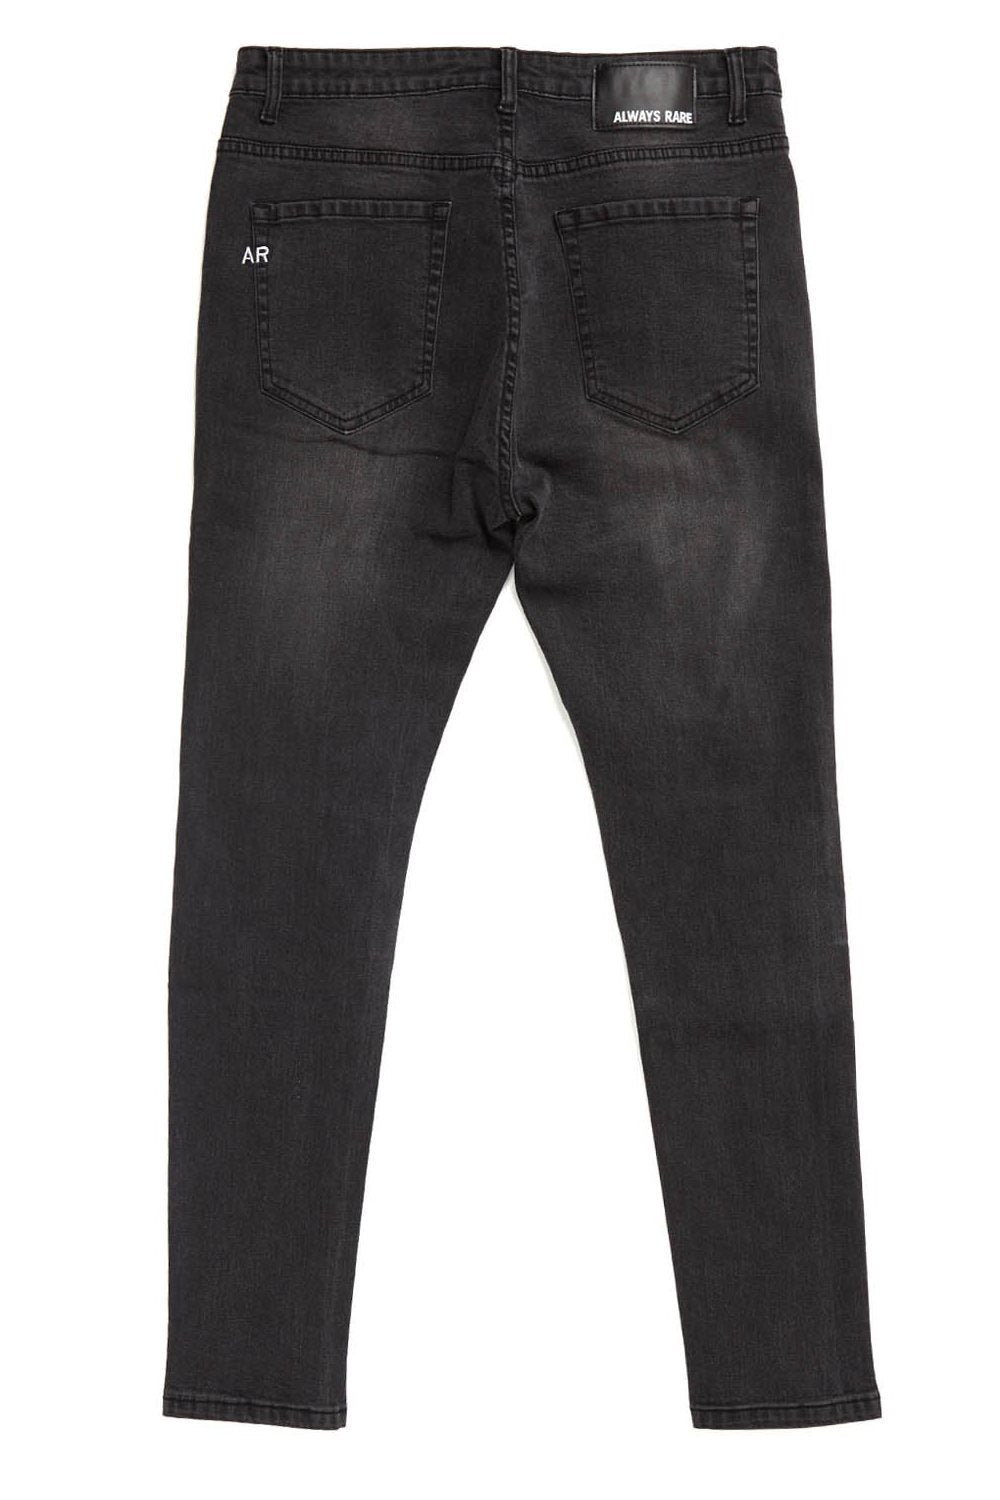 Always Rare Ripped Vincent Jeans - Black - 2